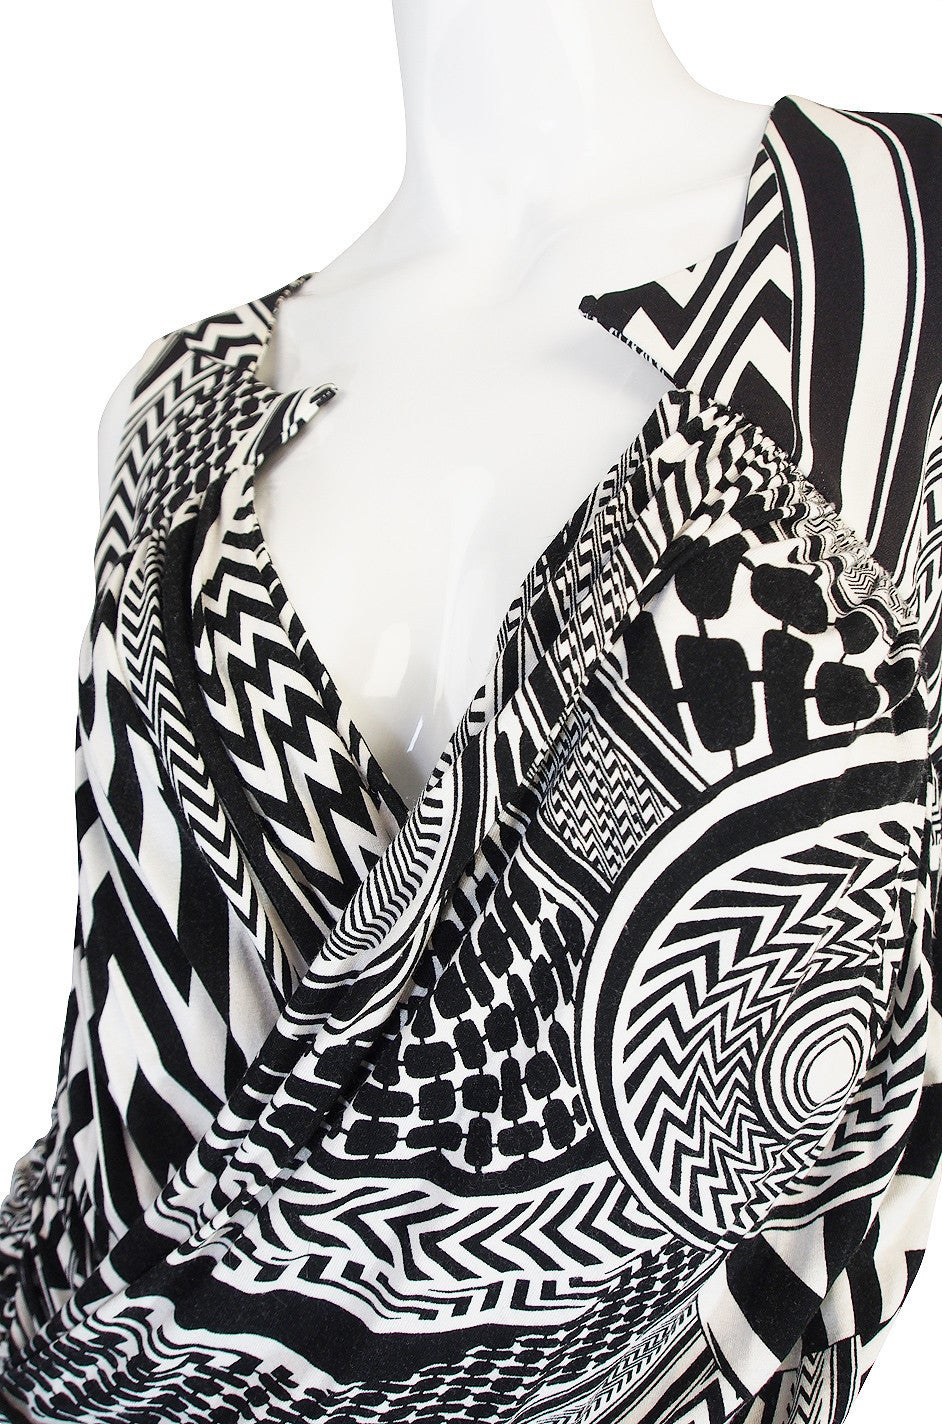 S/S 2010 Givenchy Tribal Print Mini Dress NWT 7